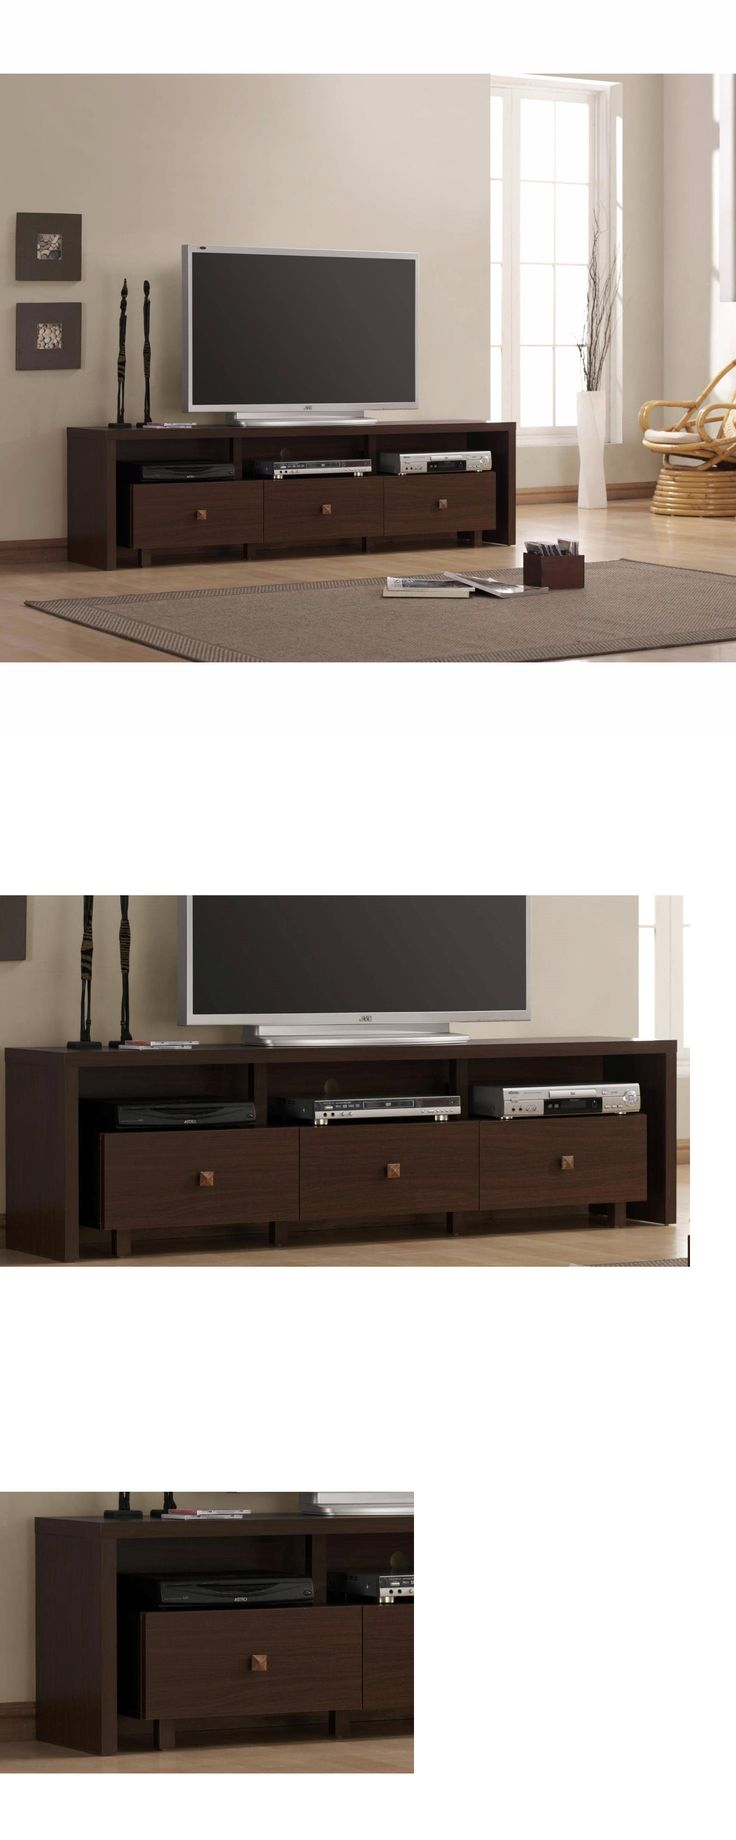 Entertainment units tv stands modern tv stand entertainment media center home theater console wood furniture buy it now only 140 99 on ebay